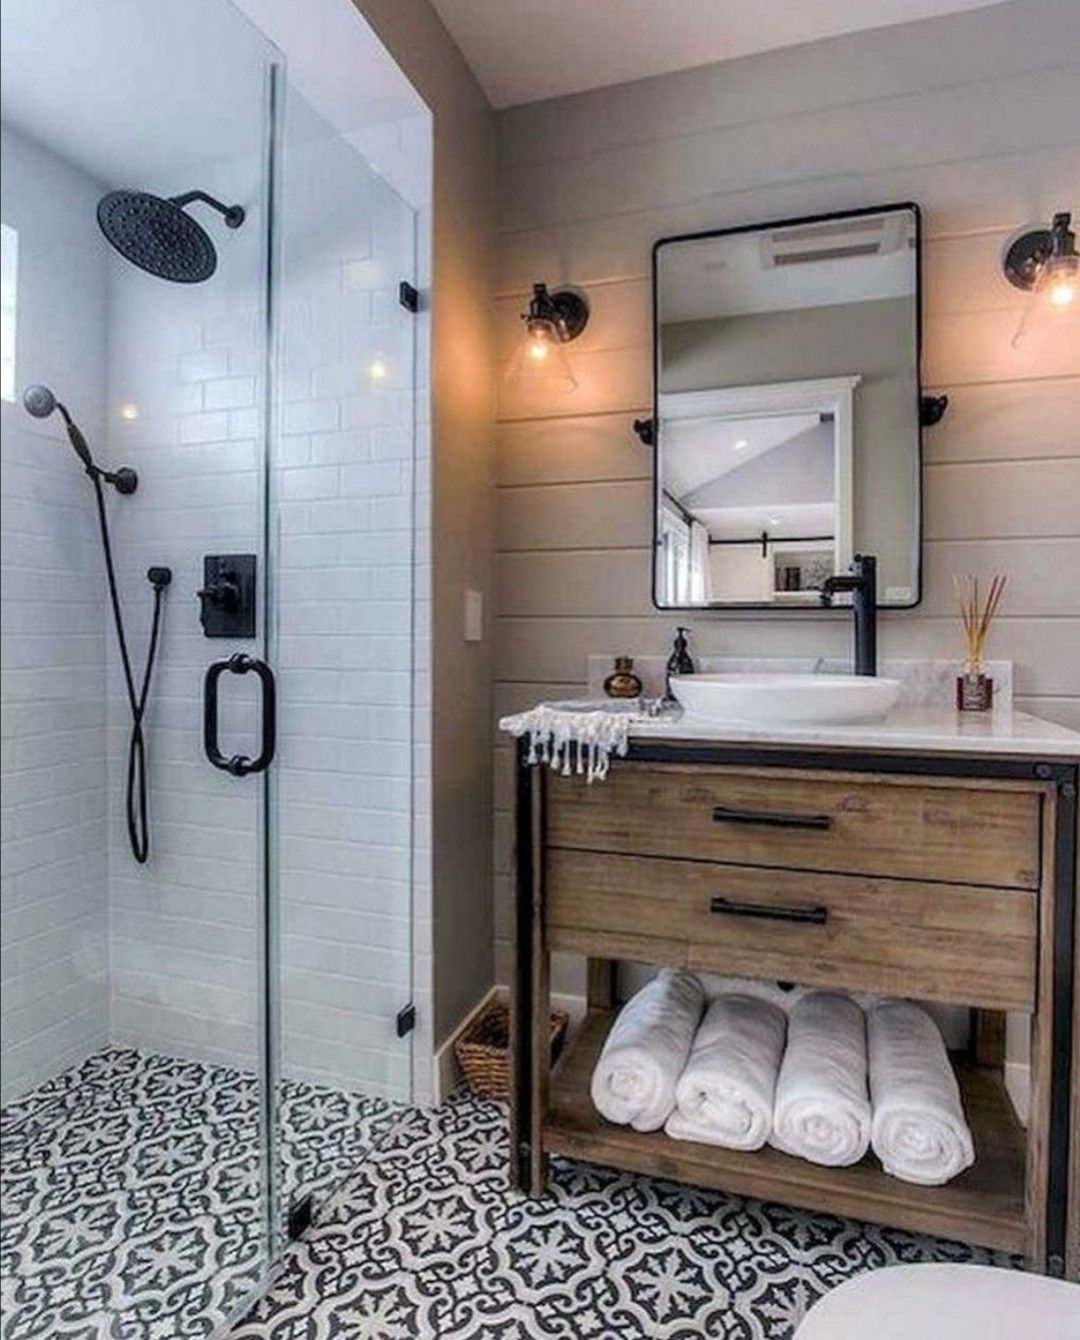 Pin On For The Home Master bathroom wall decor